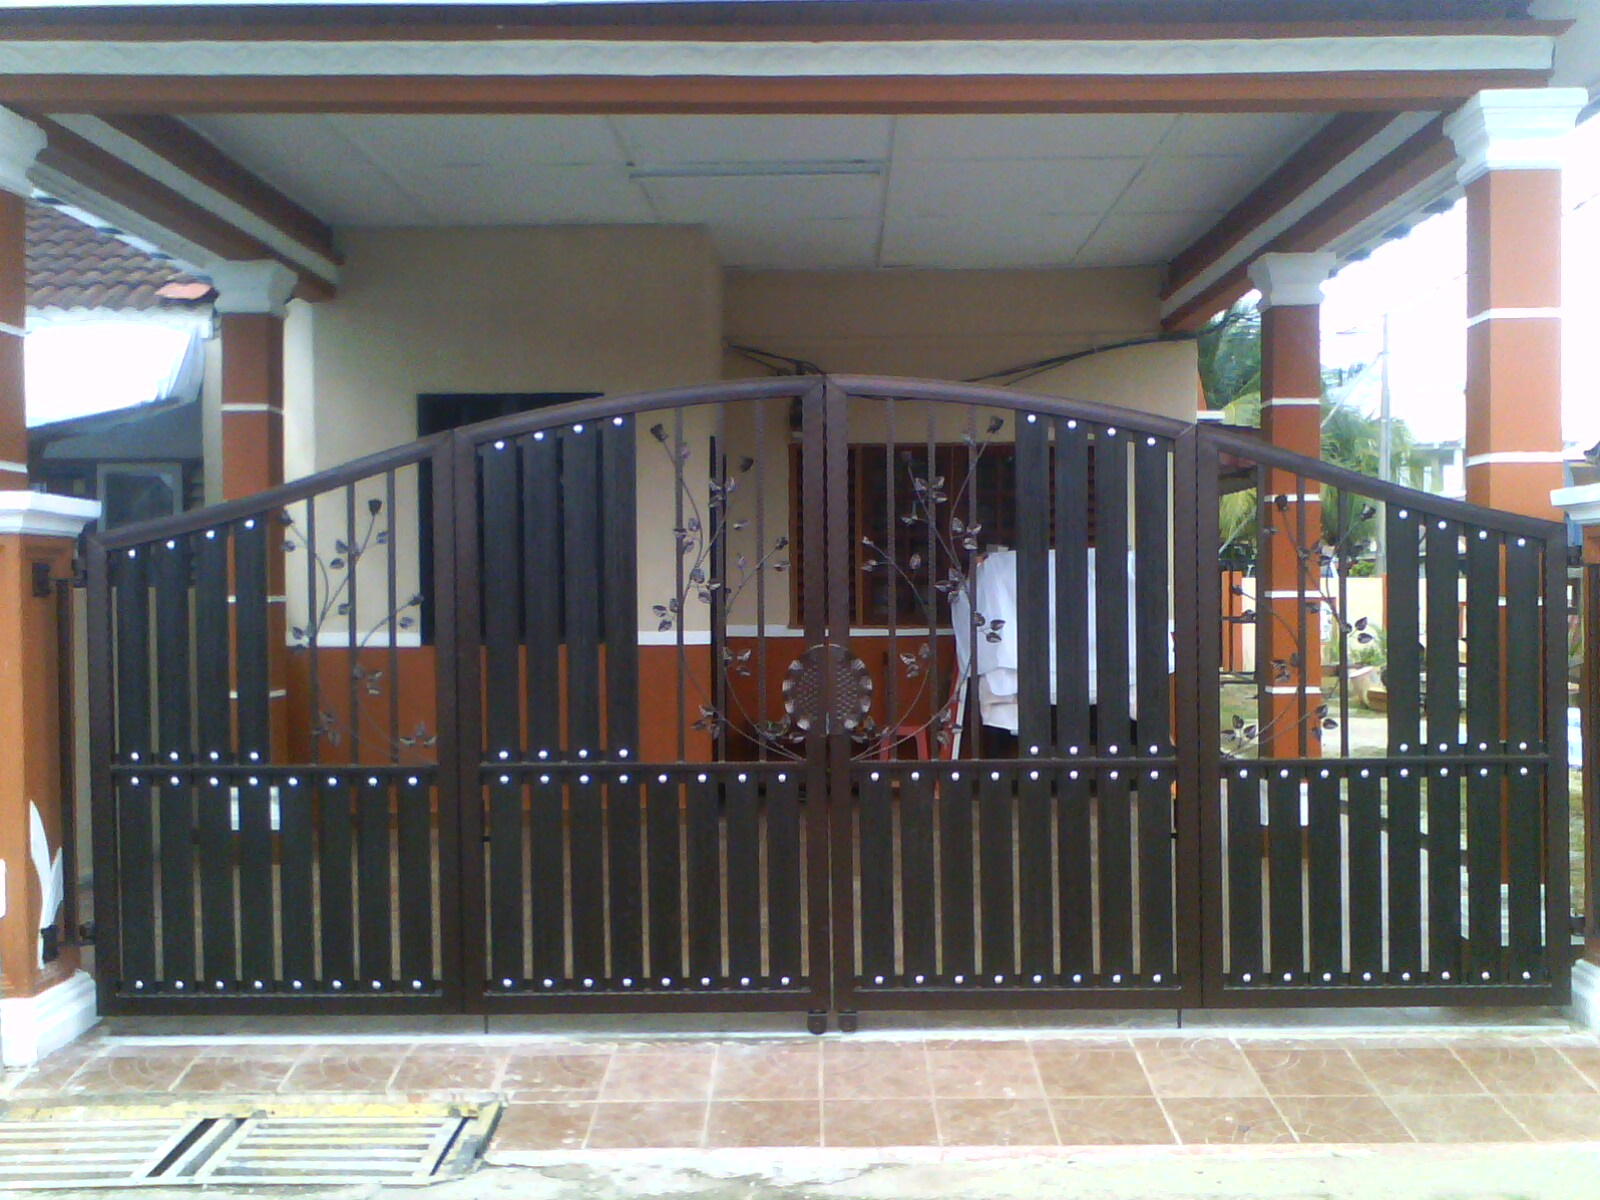 Jenis Stainless Steel Untuk Pagar Wrought Iron Double Leaf Door ~ Mhs Global Resources